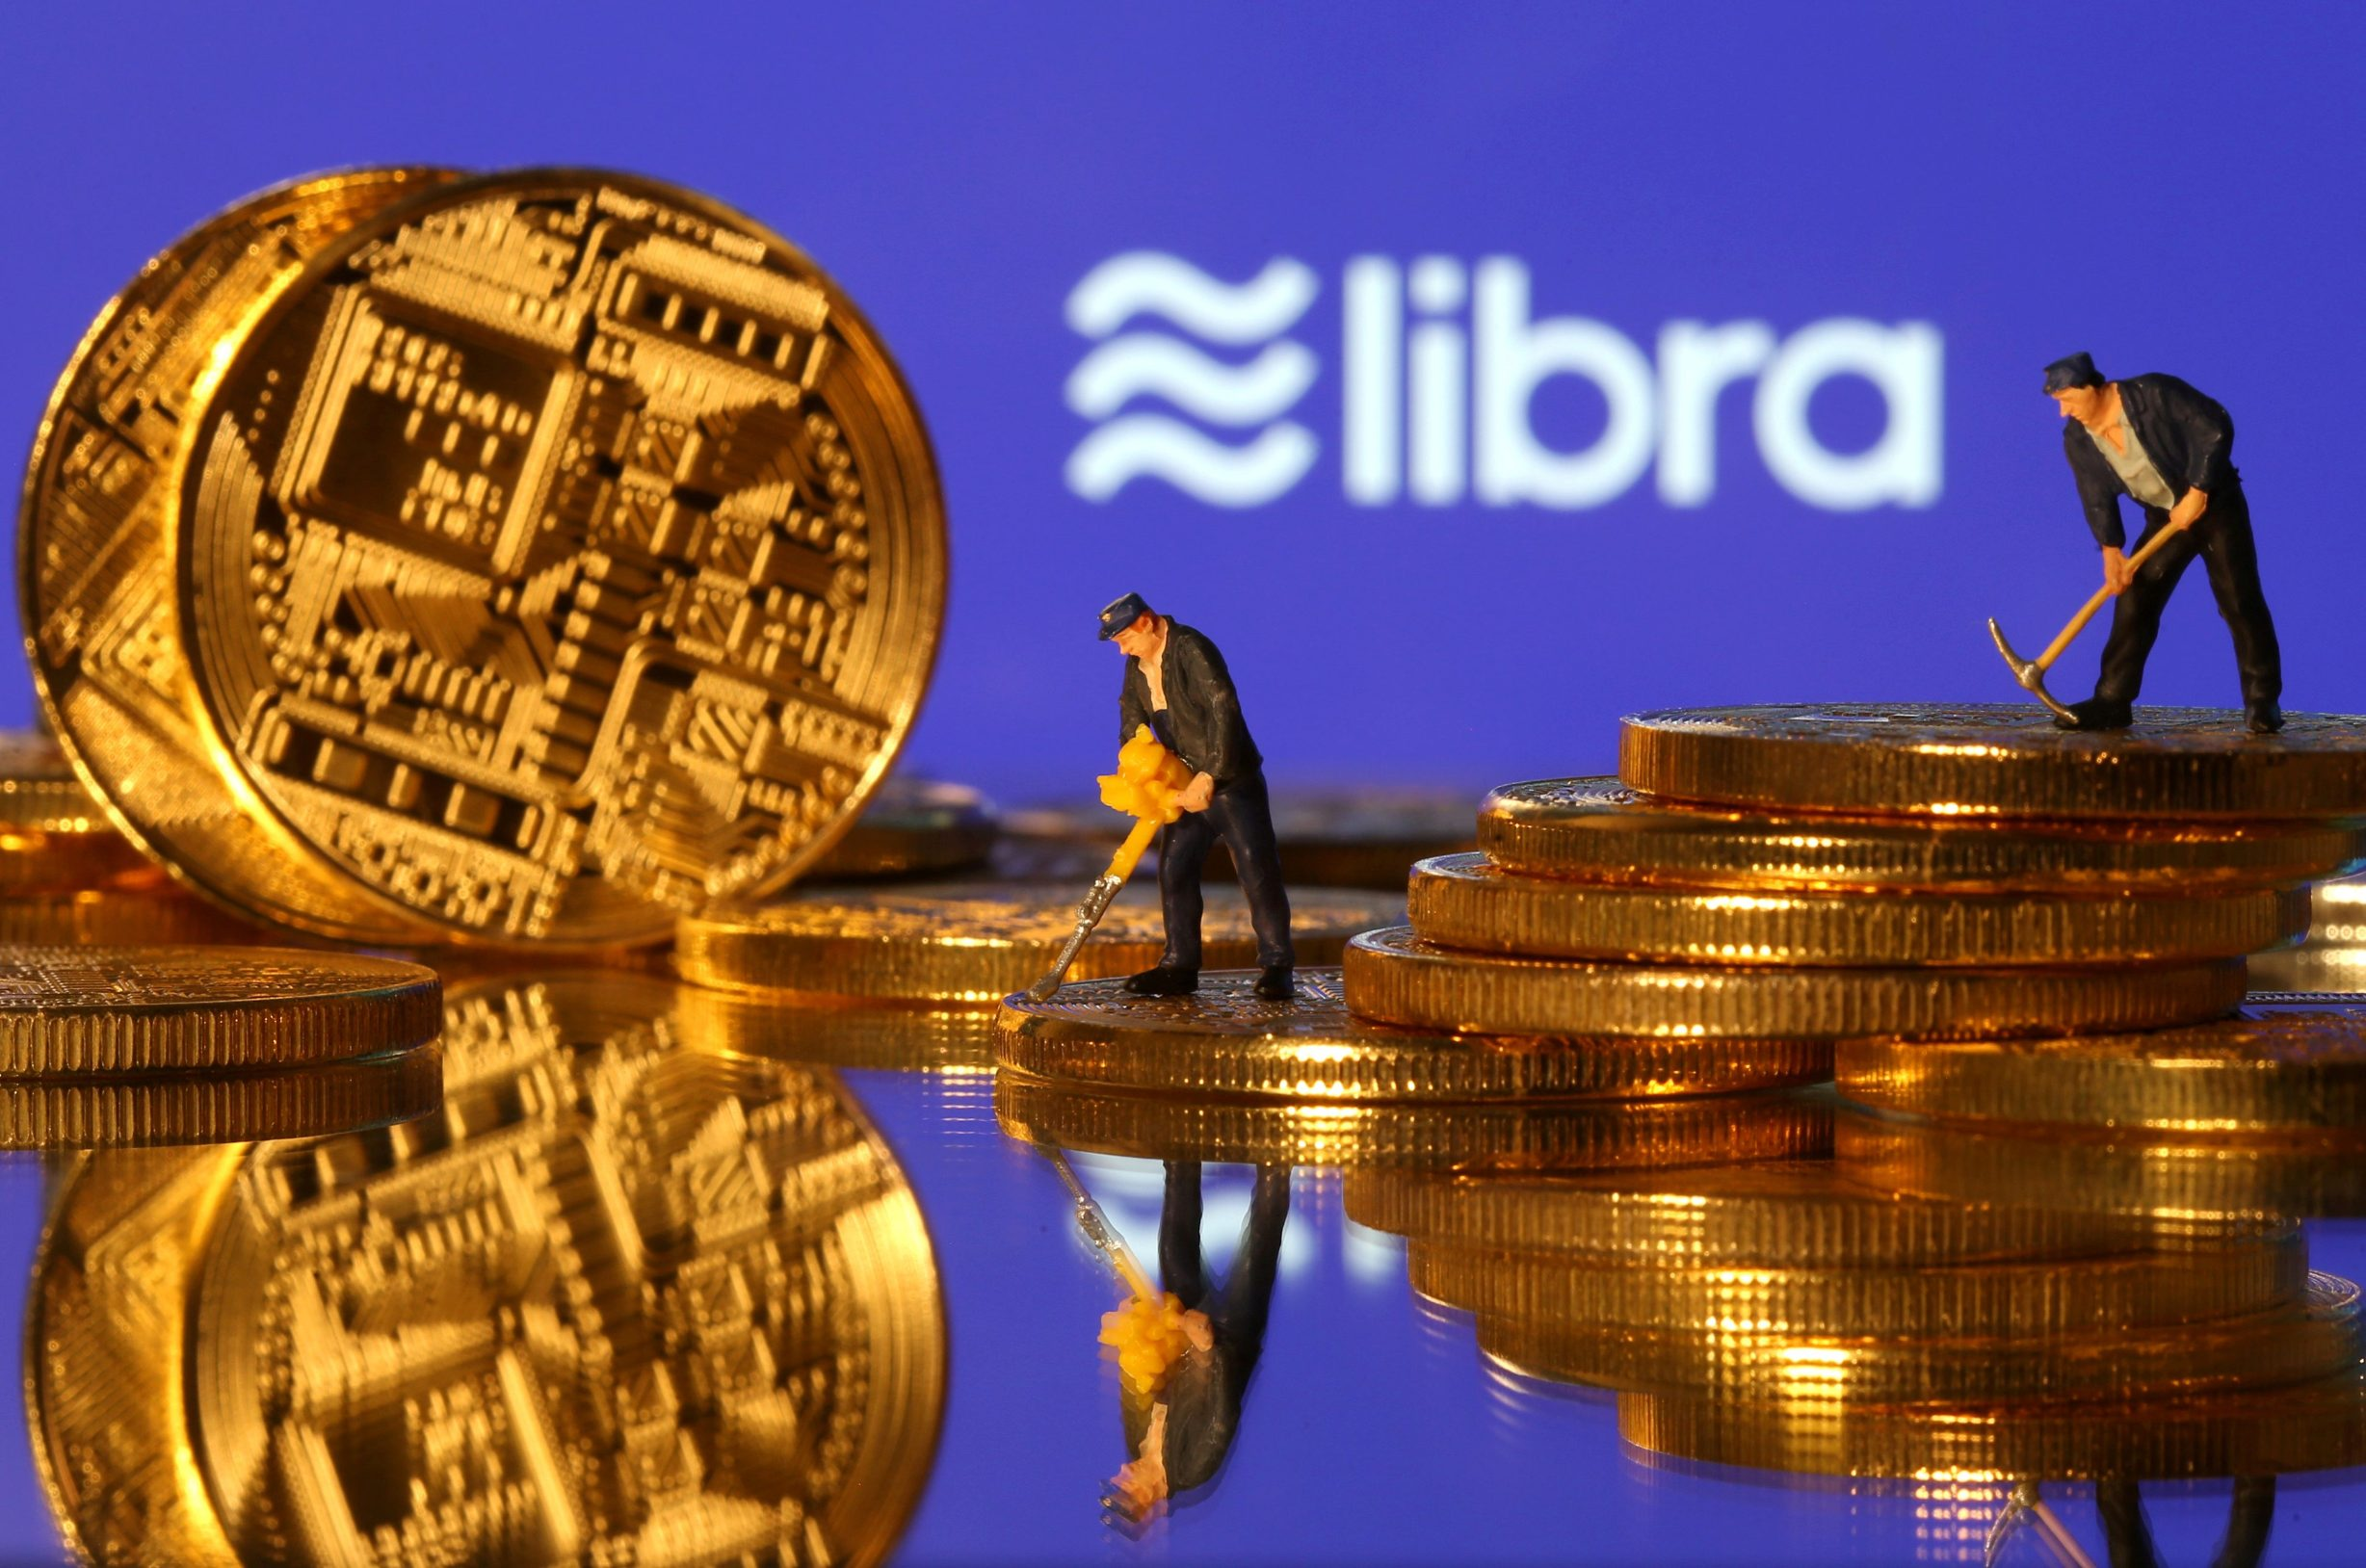 FILE PHOTO: Small toy figures are seen on representations of virtual currency in front of the Libra logo in this illustration picture, June 21, 2019. REUTERS/Dado Ruvic/Illustration/File Photo